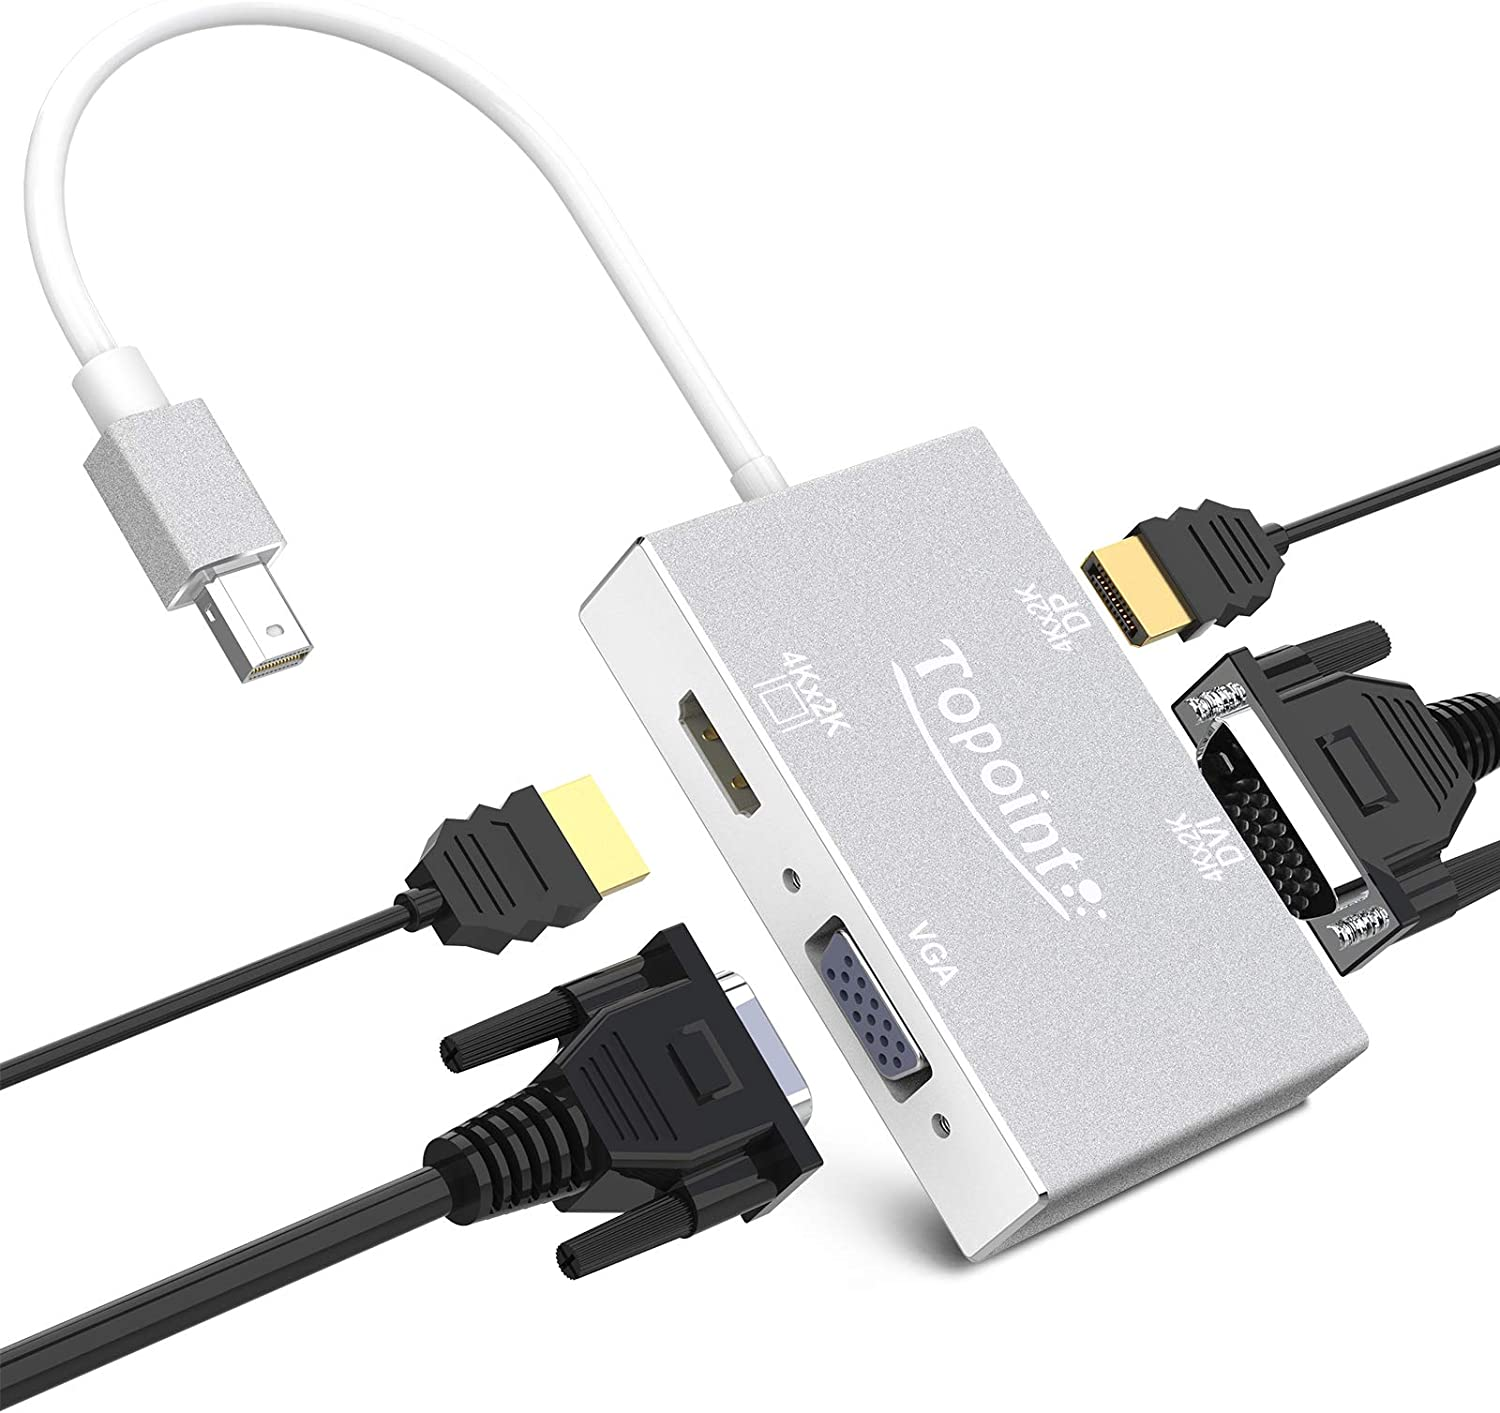 Mini DisplayPort to HDMI VGA DVI DisplayPort(DP) Adapter 4 in 1 TOPOINT Converter 4K Thunderbolt 2 Cable Compatible for MacBook Pro/ThinkPad X1/Surface Laptop 2 /Surface Book /Surface Pro 1 2 3 4 6